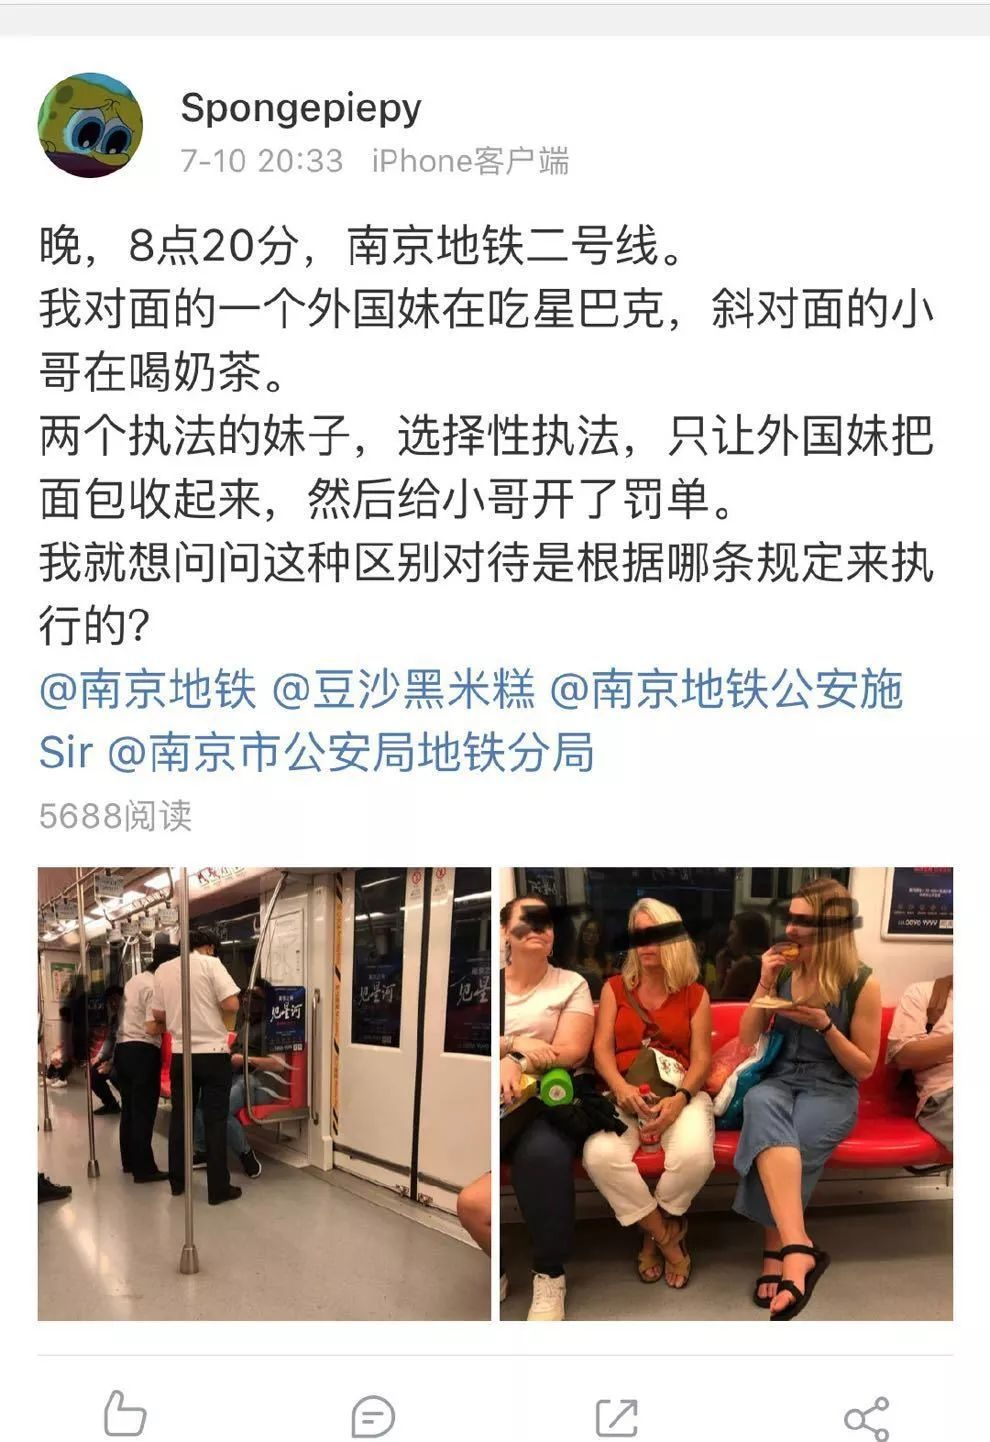 In the subway compartment, the Chinese are not penalized for foreigners? Nanjing Metro responds again